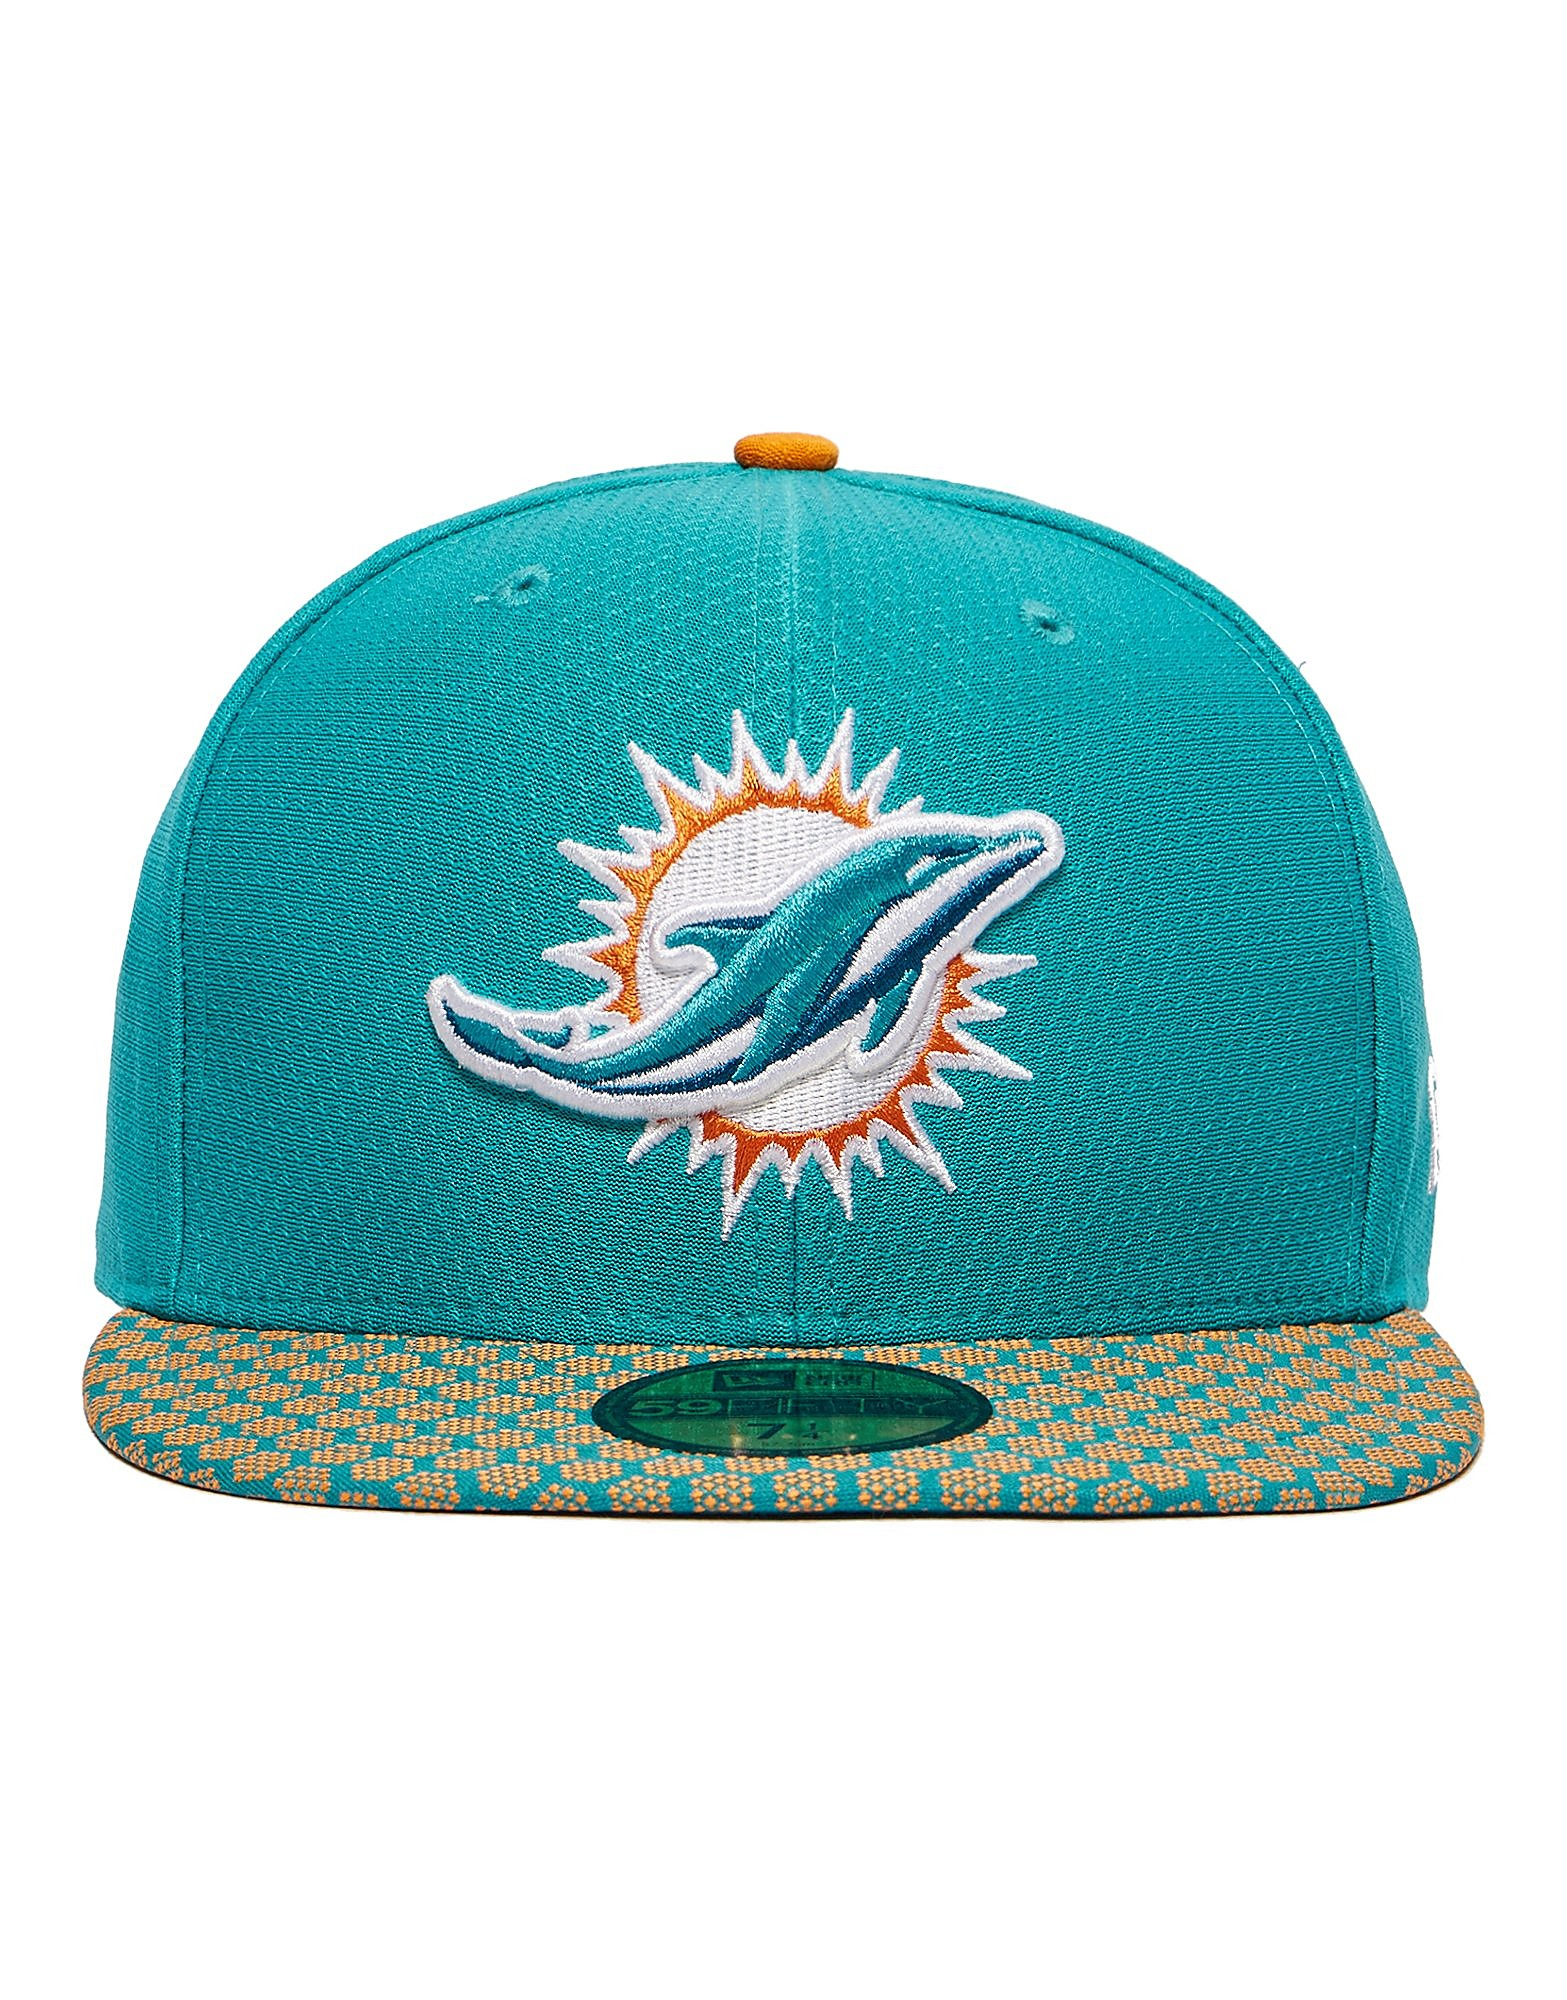 New Era Miami Dolphins 59FIFTY Cap